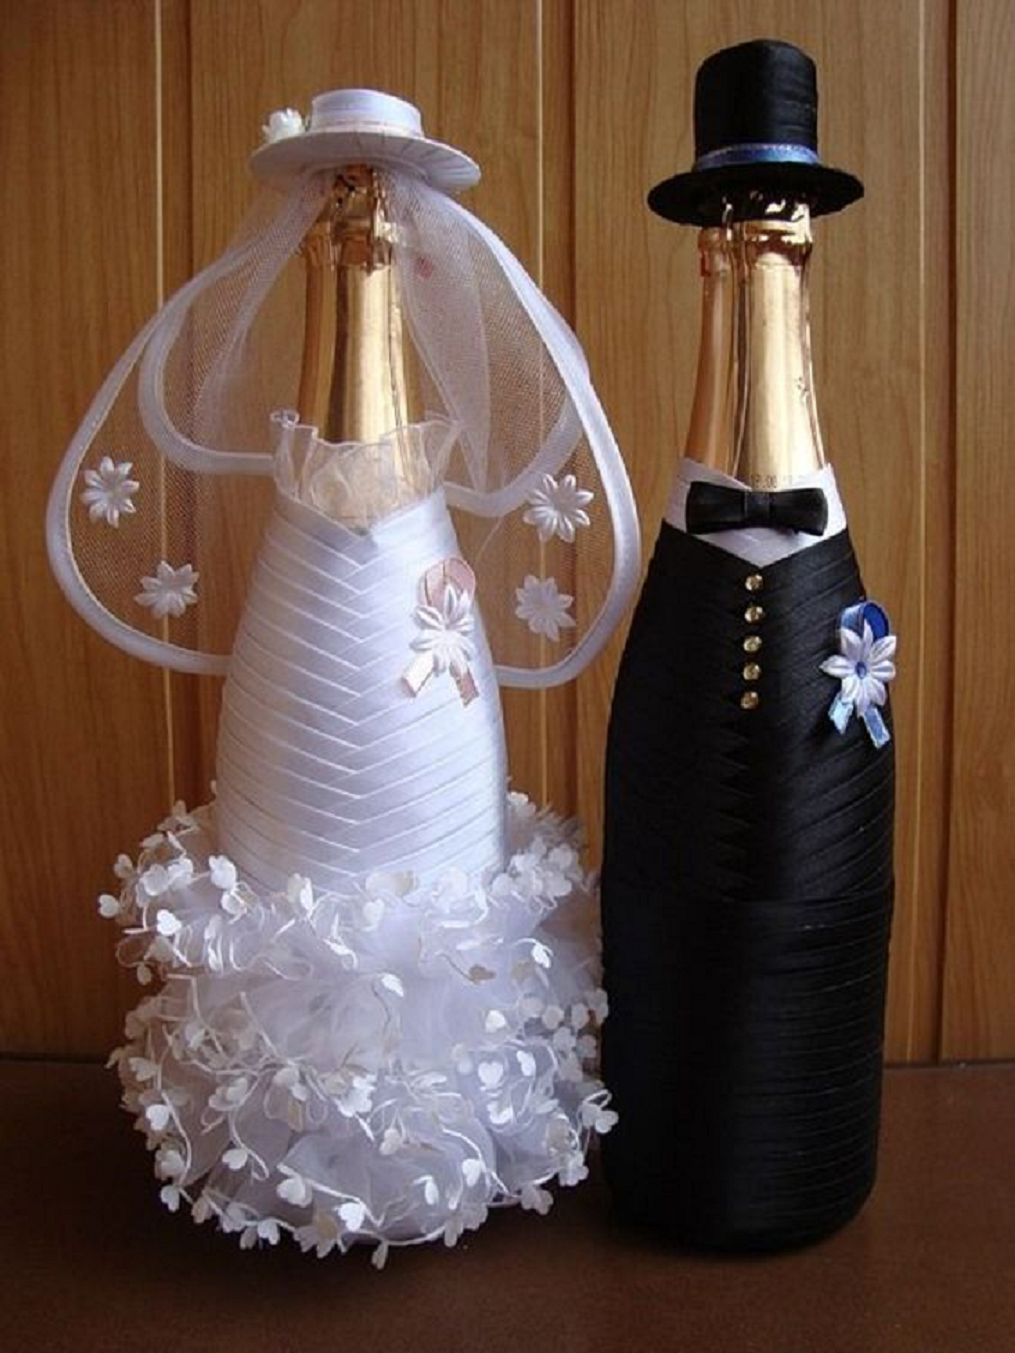 Bling wedding receptions Glittering Bride and Groom Decorated Champagne Bottles